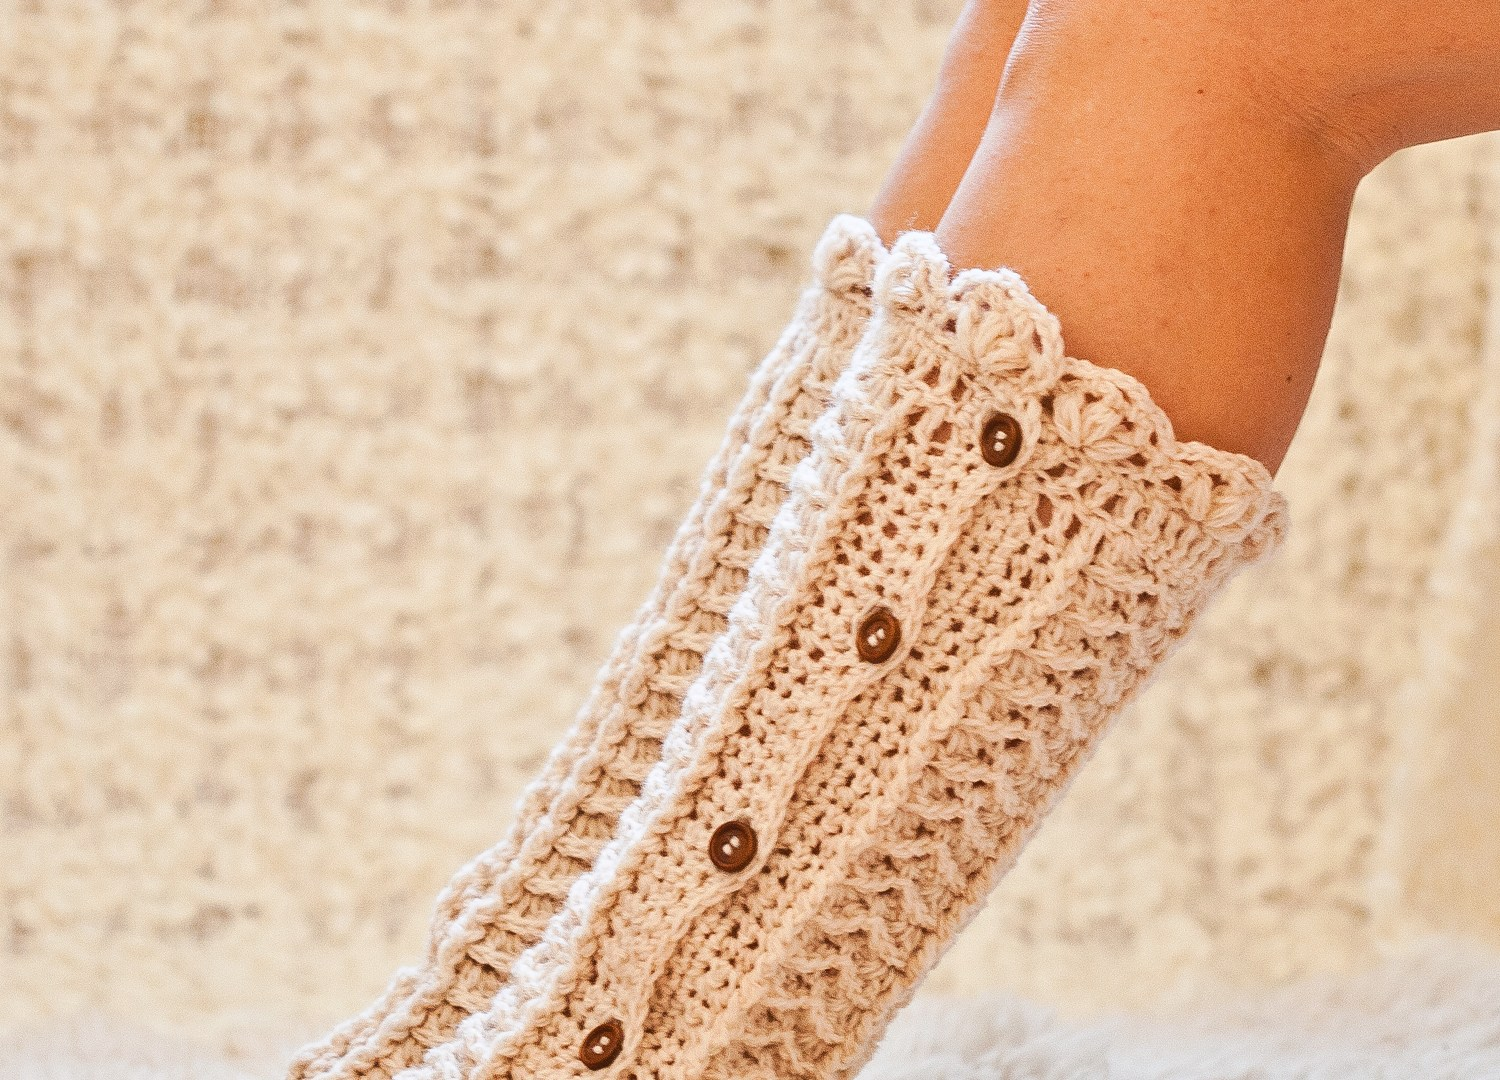 Keep your toes warm and cozy with these crochet socks and warmers!